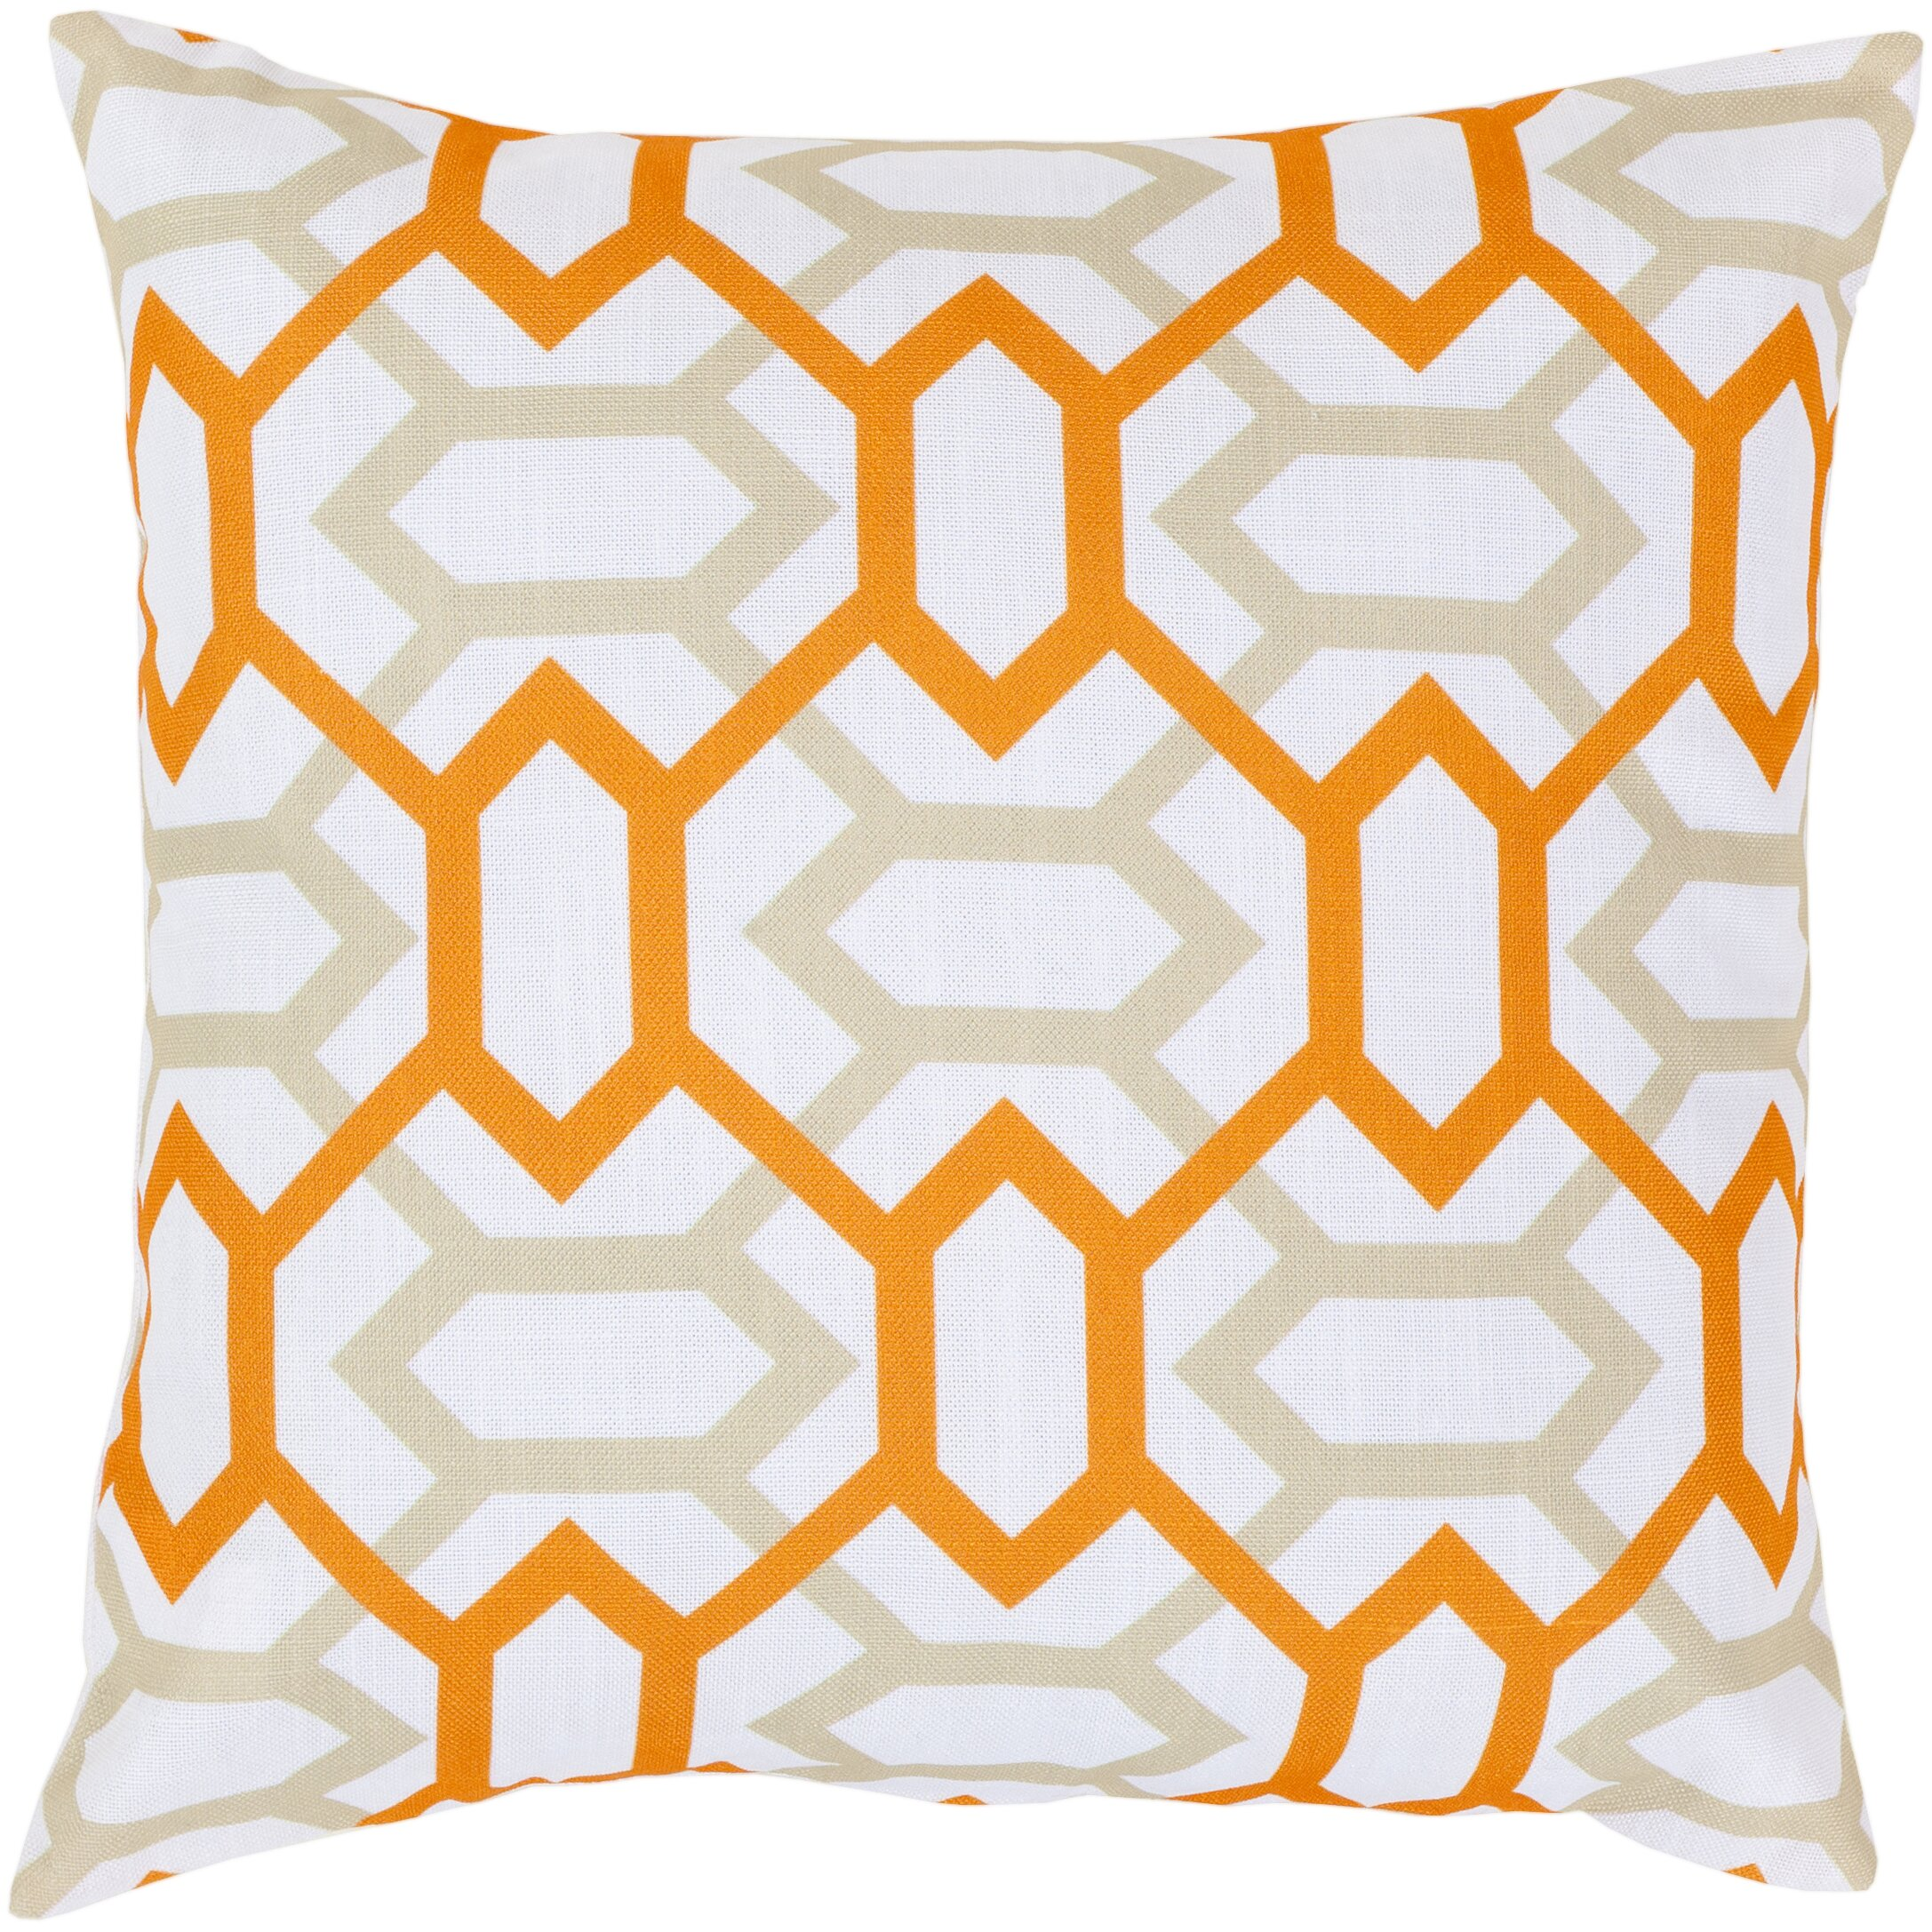 Throw Pillow Gallery : Varick Gallery Appling the Diamonds Throw Pillow & Reviews Wayfair